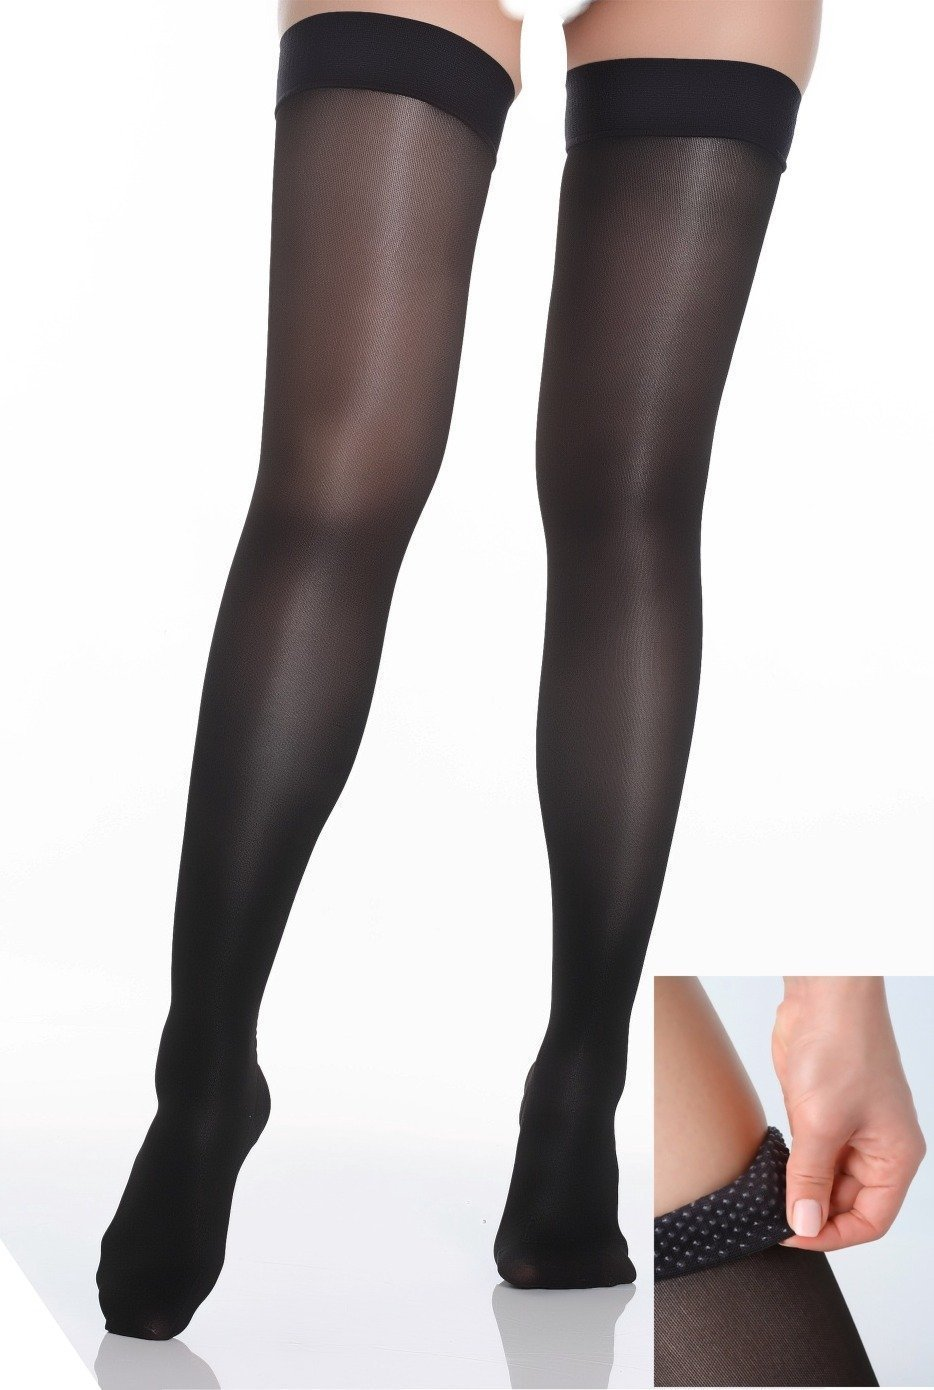 ITA-MED Sheer Thigh Highs - Compression Stockings (23-30